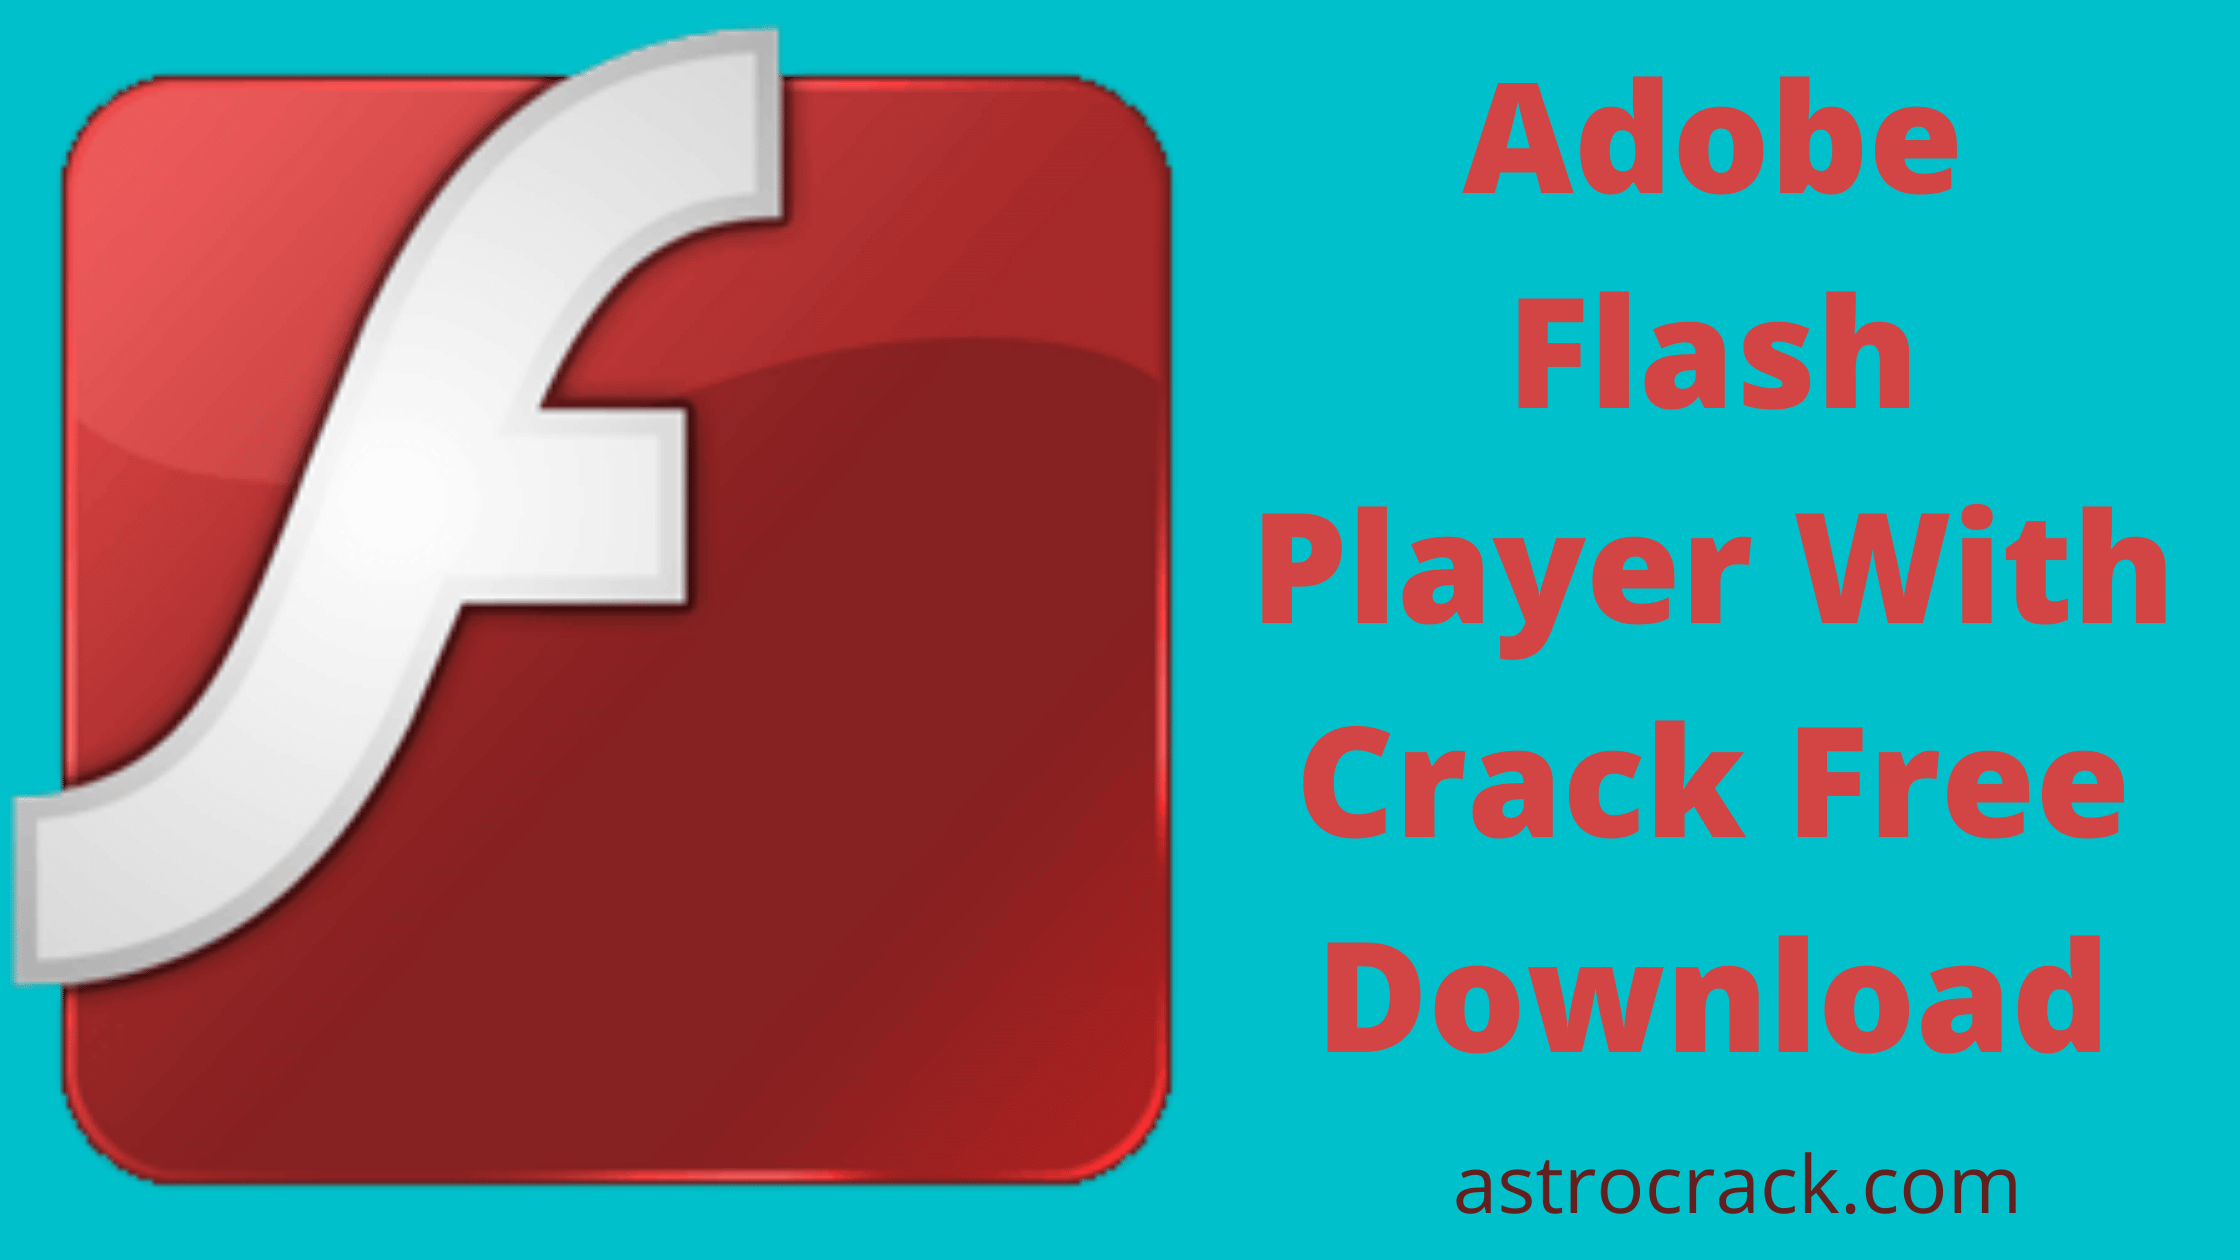 Adobe Flash Player, Adobe Flash Player crack, Adobe Flash Player crack download, Adobe Flash Player Crack patched, Adobe Flash Player download